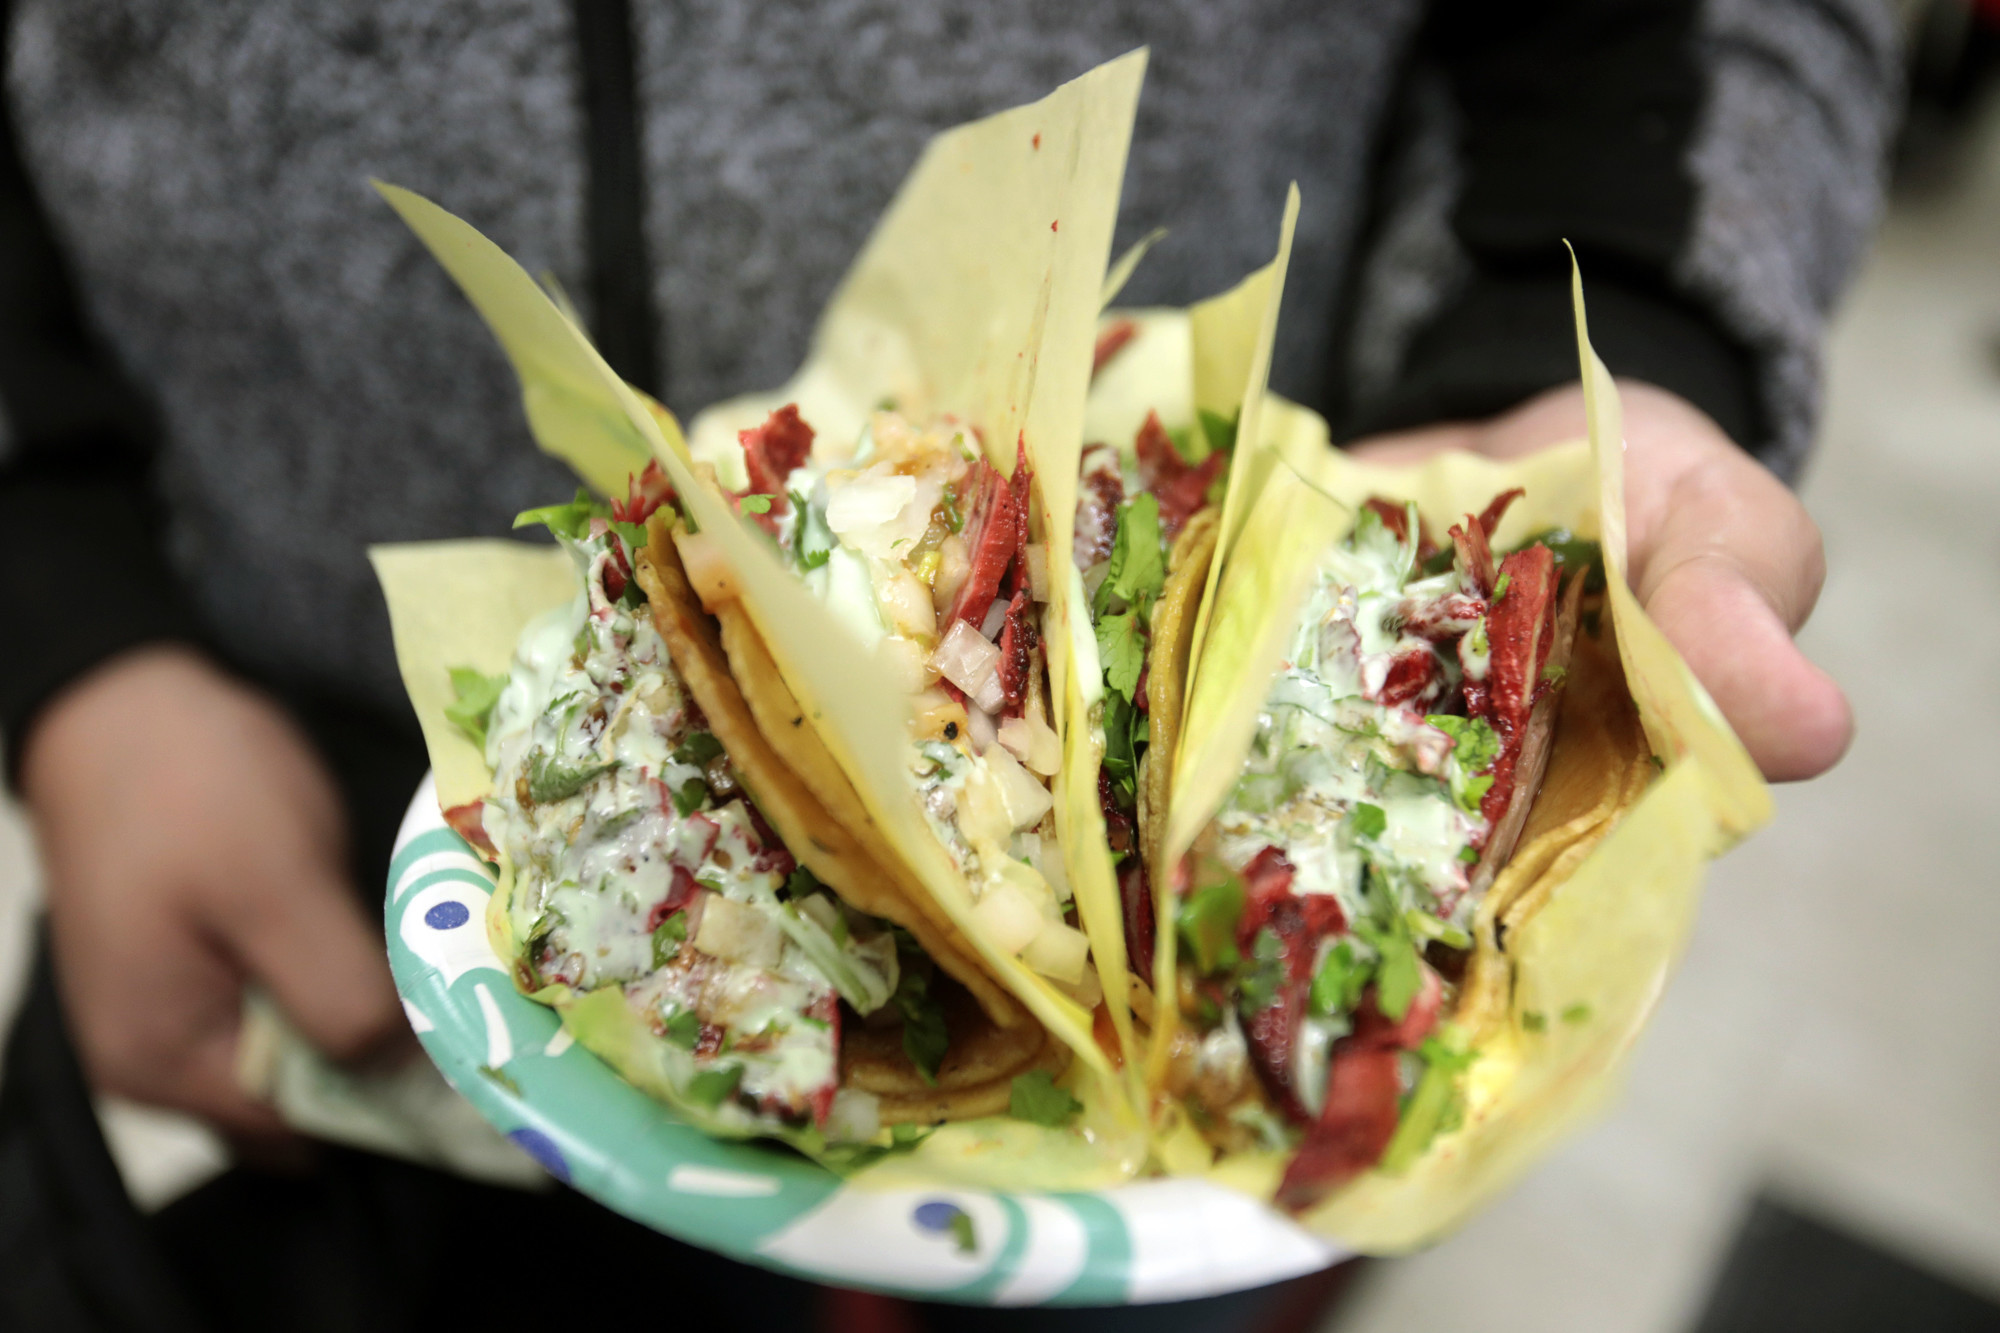 The Tijuana-style adobada (spicy pork) tacos with cilantro and avocado sauce at Tacos El G in the San Diego neighborhood of National City on Jan. 20.